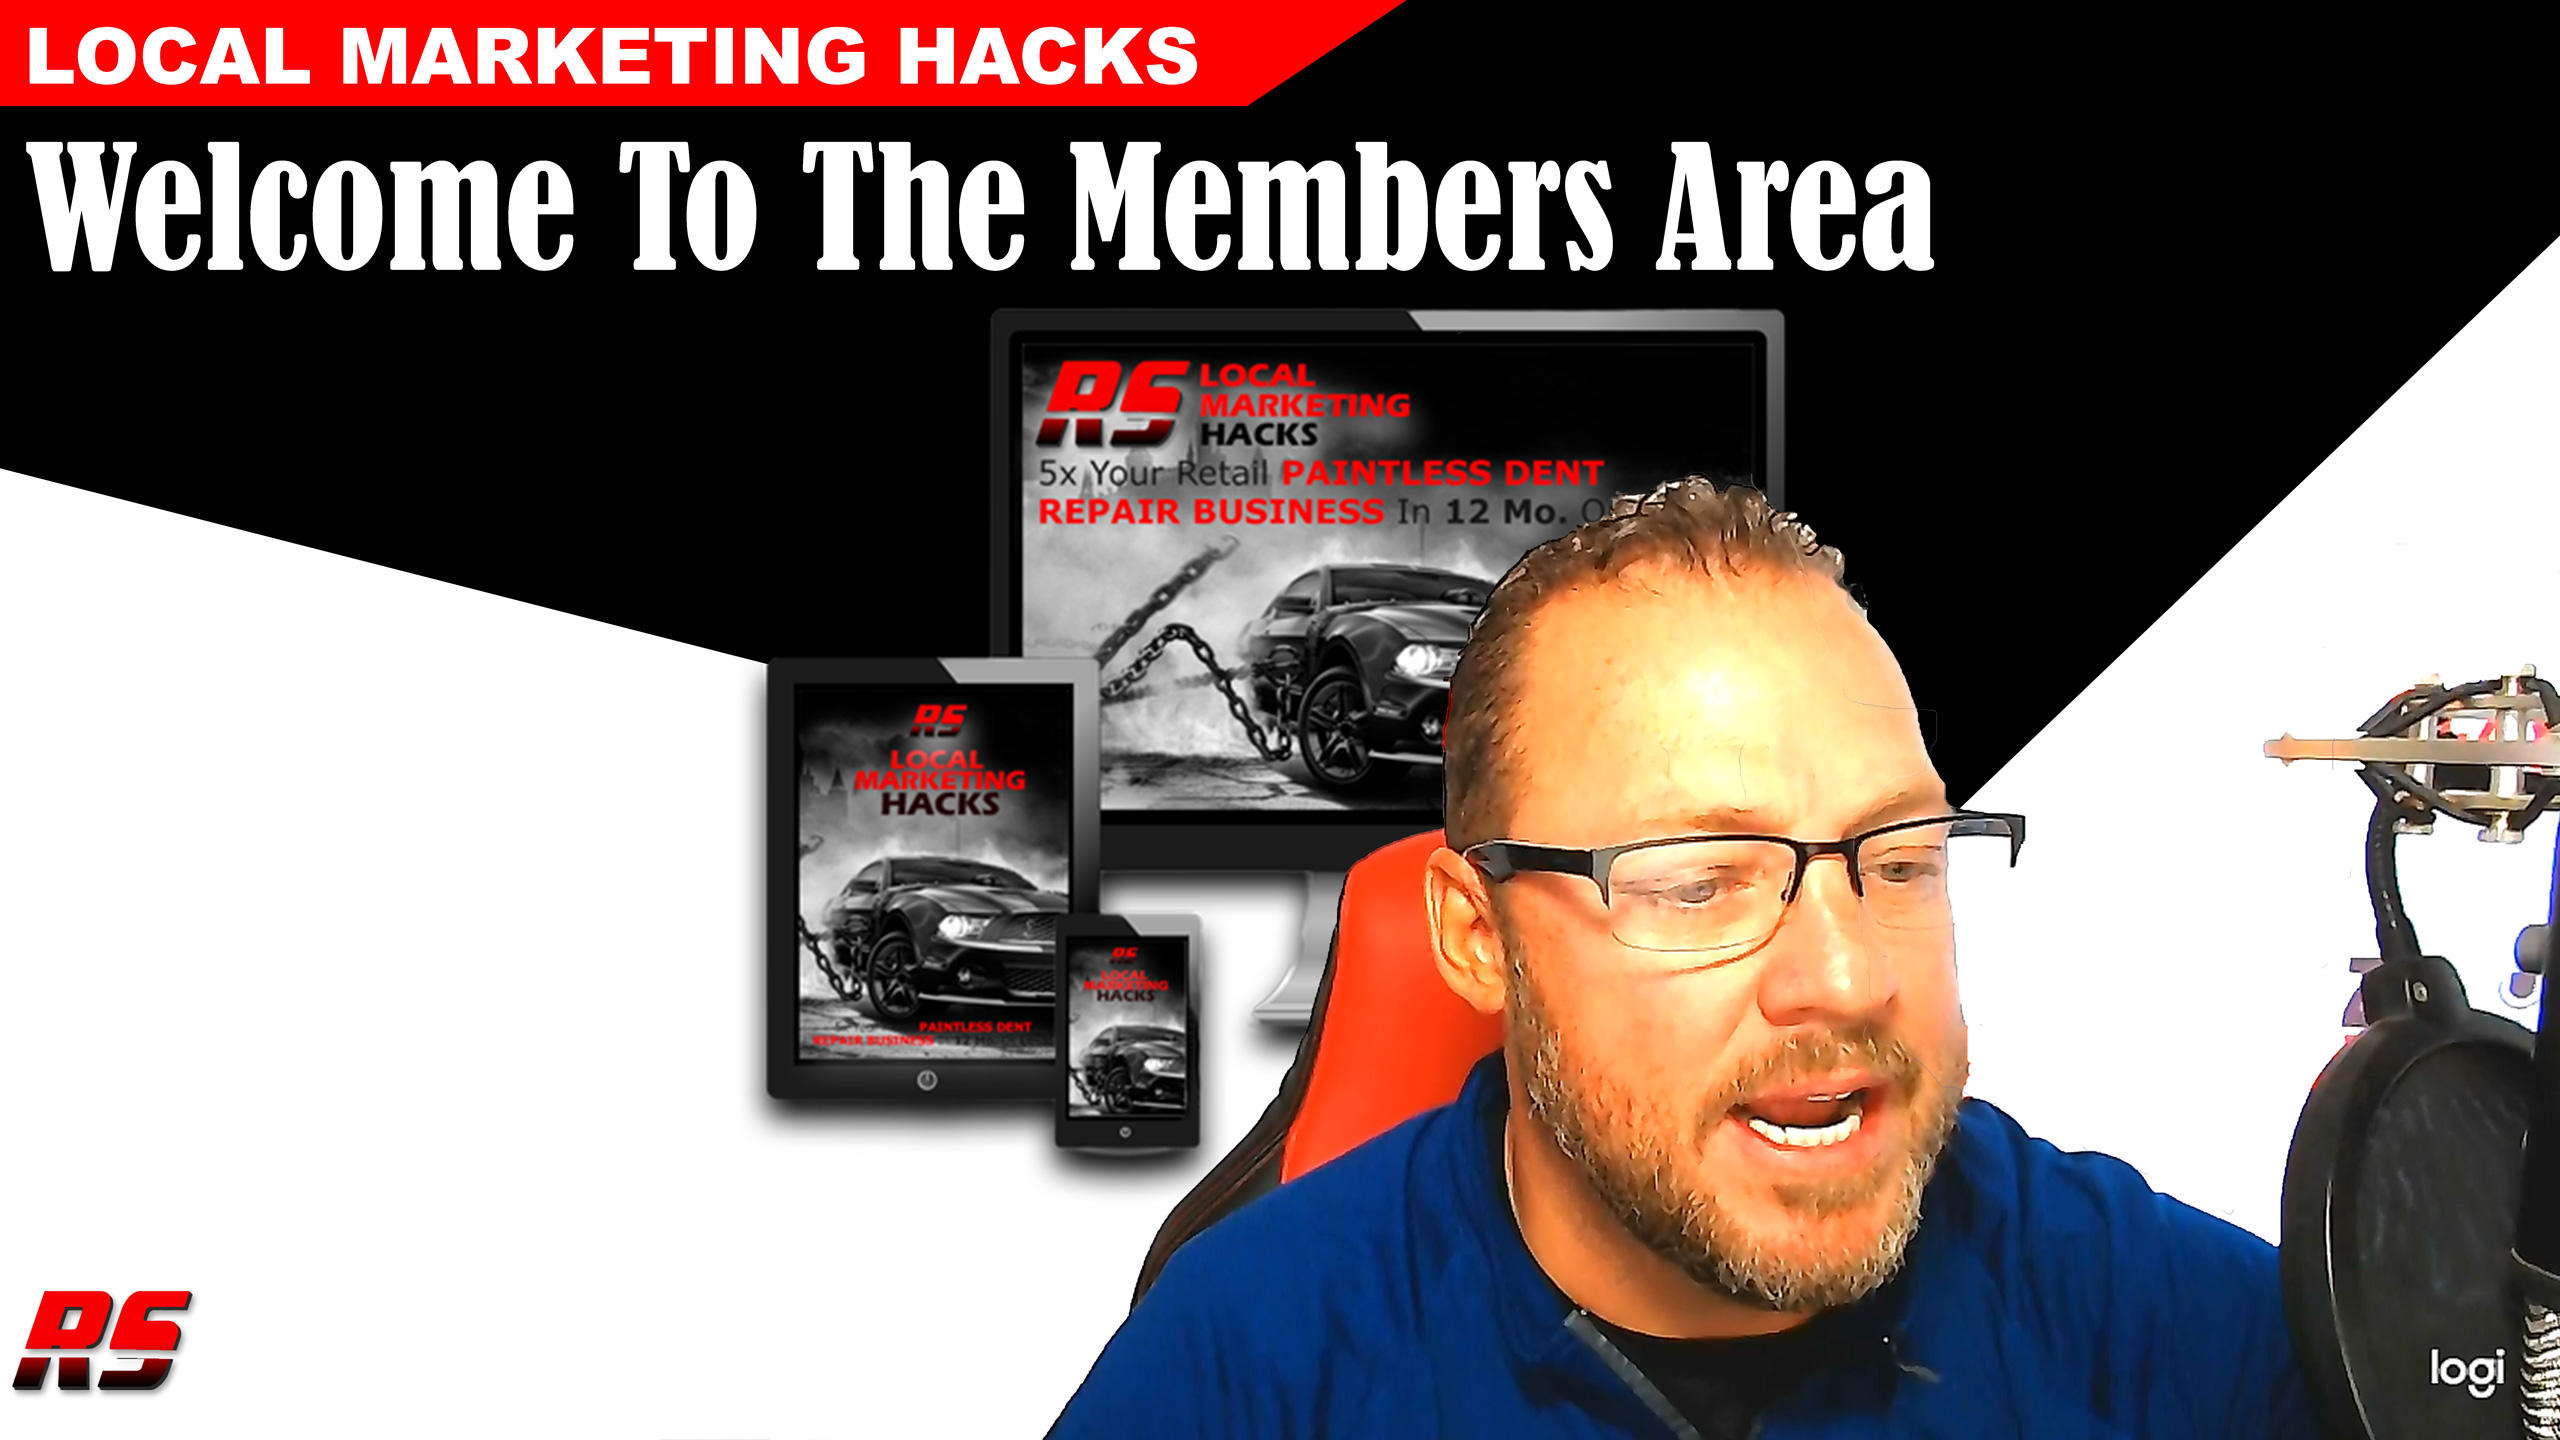 Welcome To The Local Marketing Hacks Members Area For Paintless Dent And Automotive Hail Repair Owners And Technicians